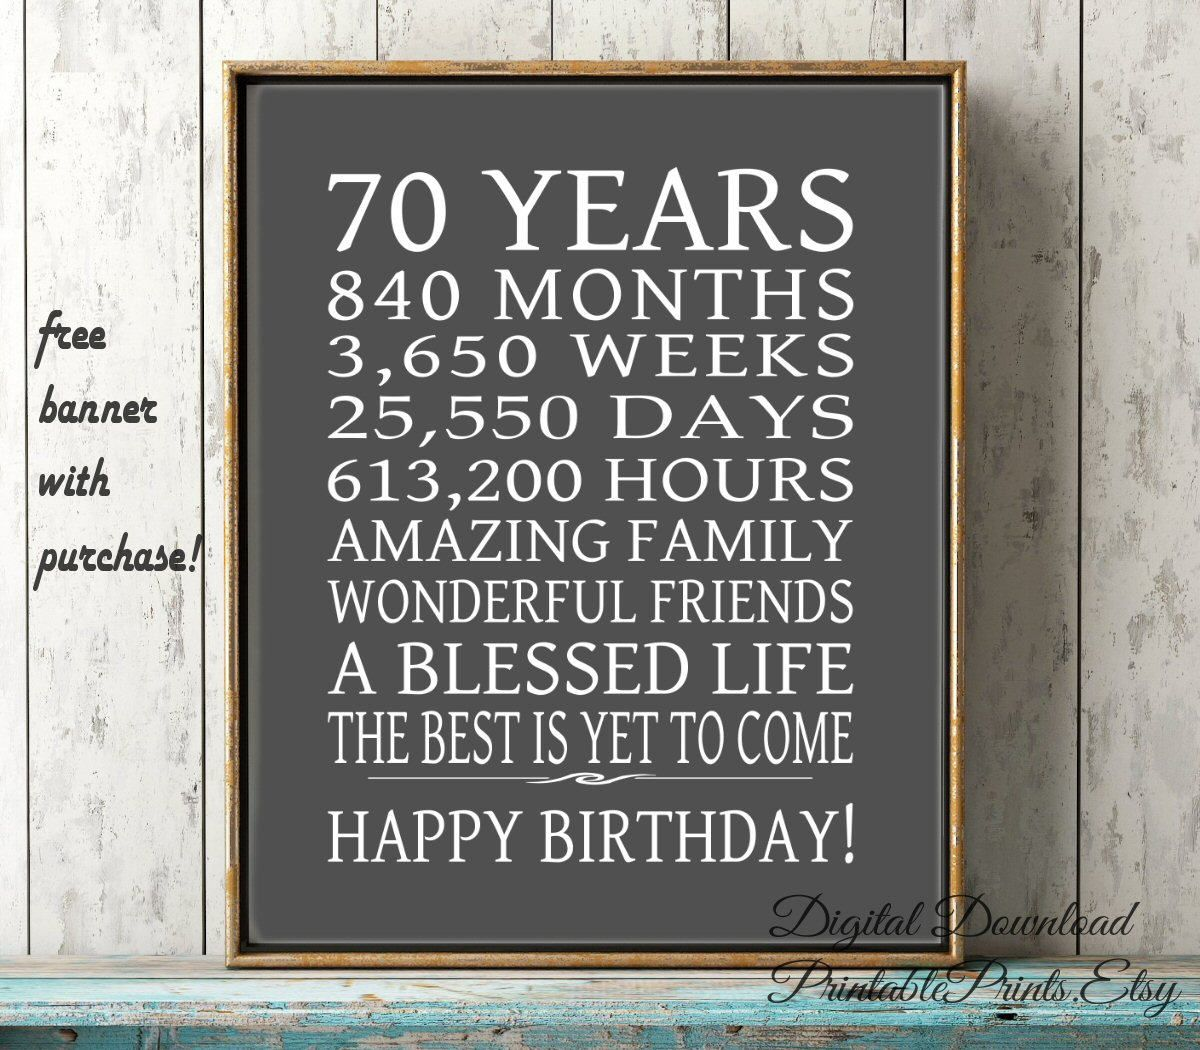 70th Birthday Sign FREE PRINTABLE 70 Year Gift Digital File Instant Download BANNER Best Is Yet To Come Poster By PrintablePrints On Etsy